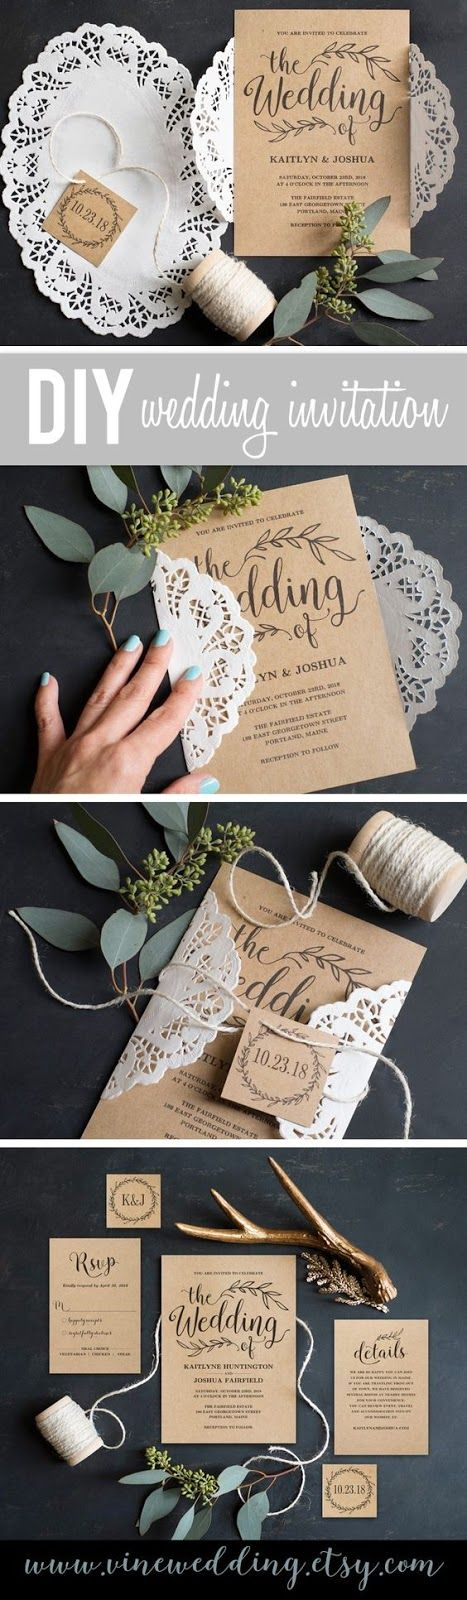 19 Easy to Make Wedding Invitation Ideas